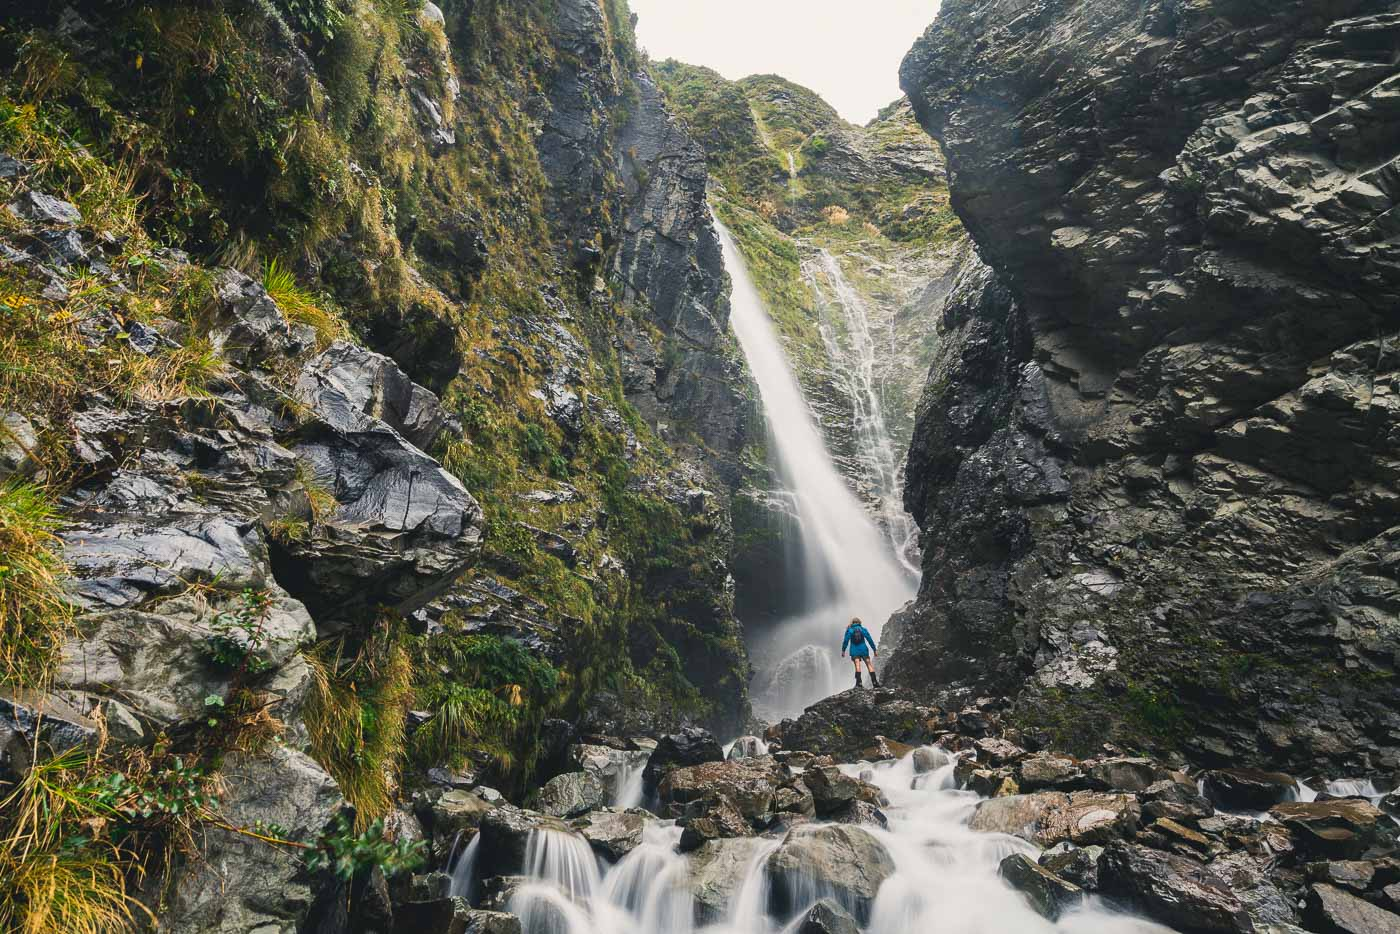 Geoff Reid exploring the waterfalls in Mount Cook National Park